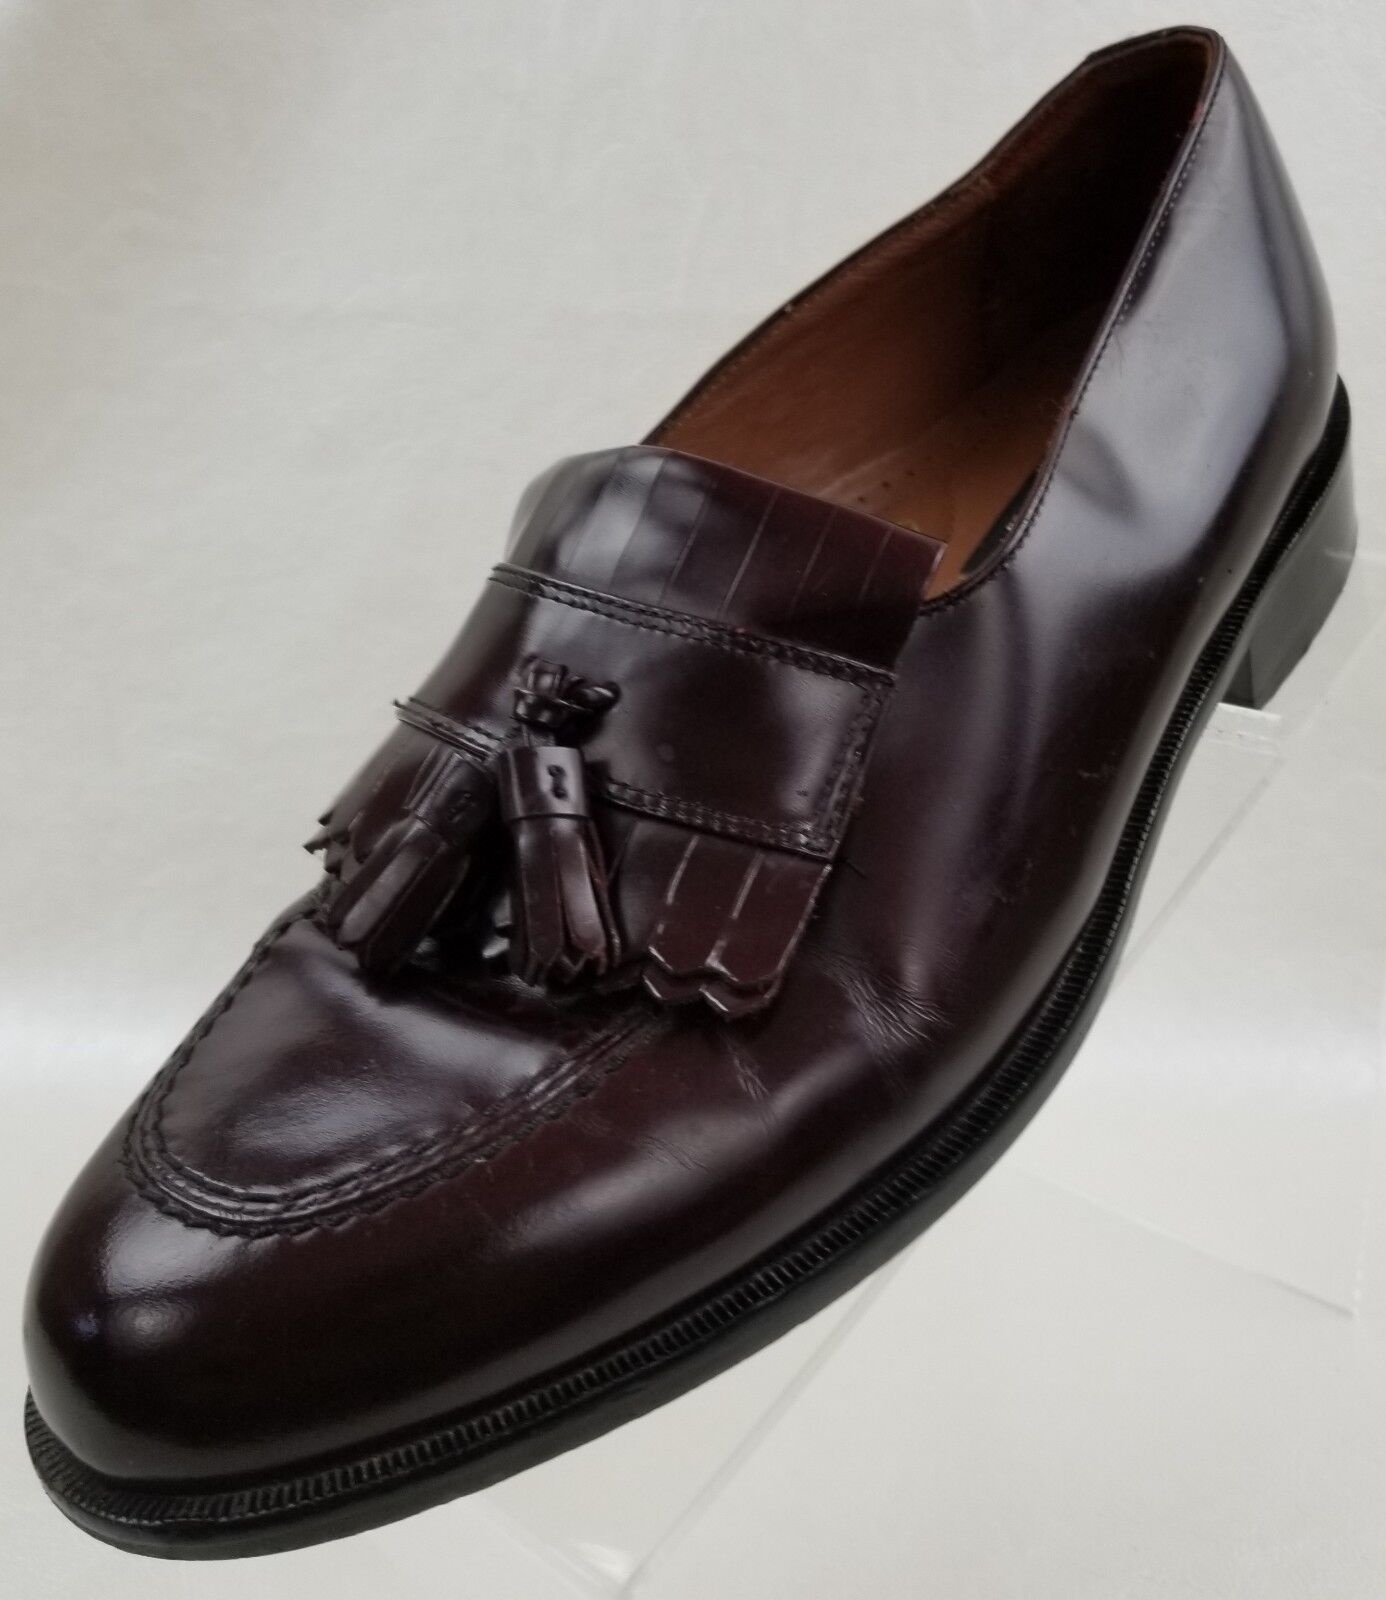 Bostonian Loafers Tassel Kiltie First Flex Mens Brown Leather Slip On shoes 8.5M